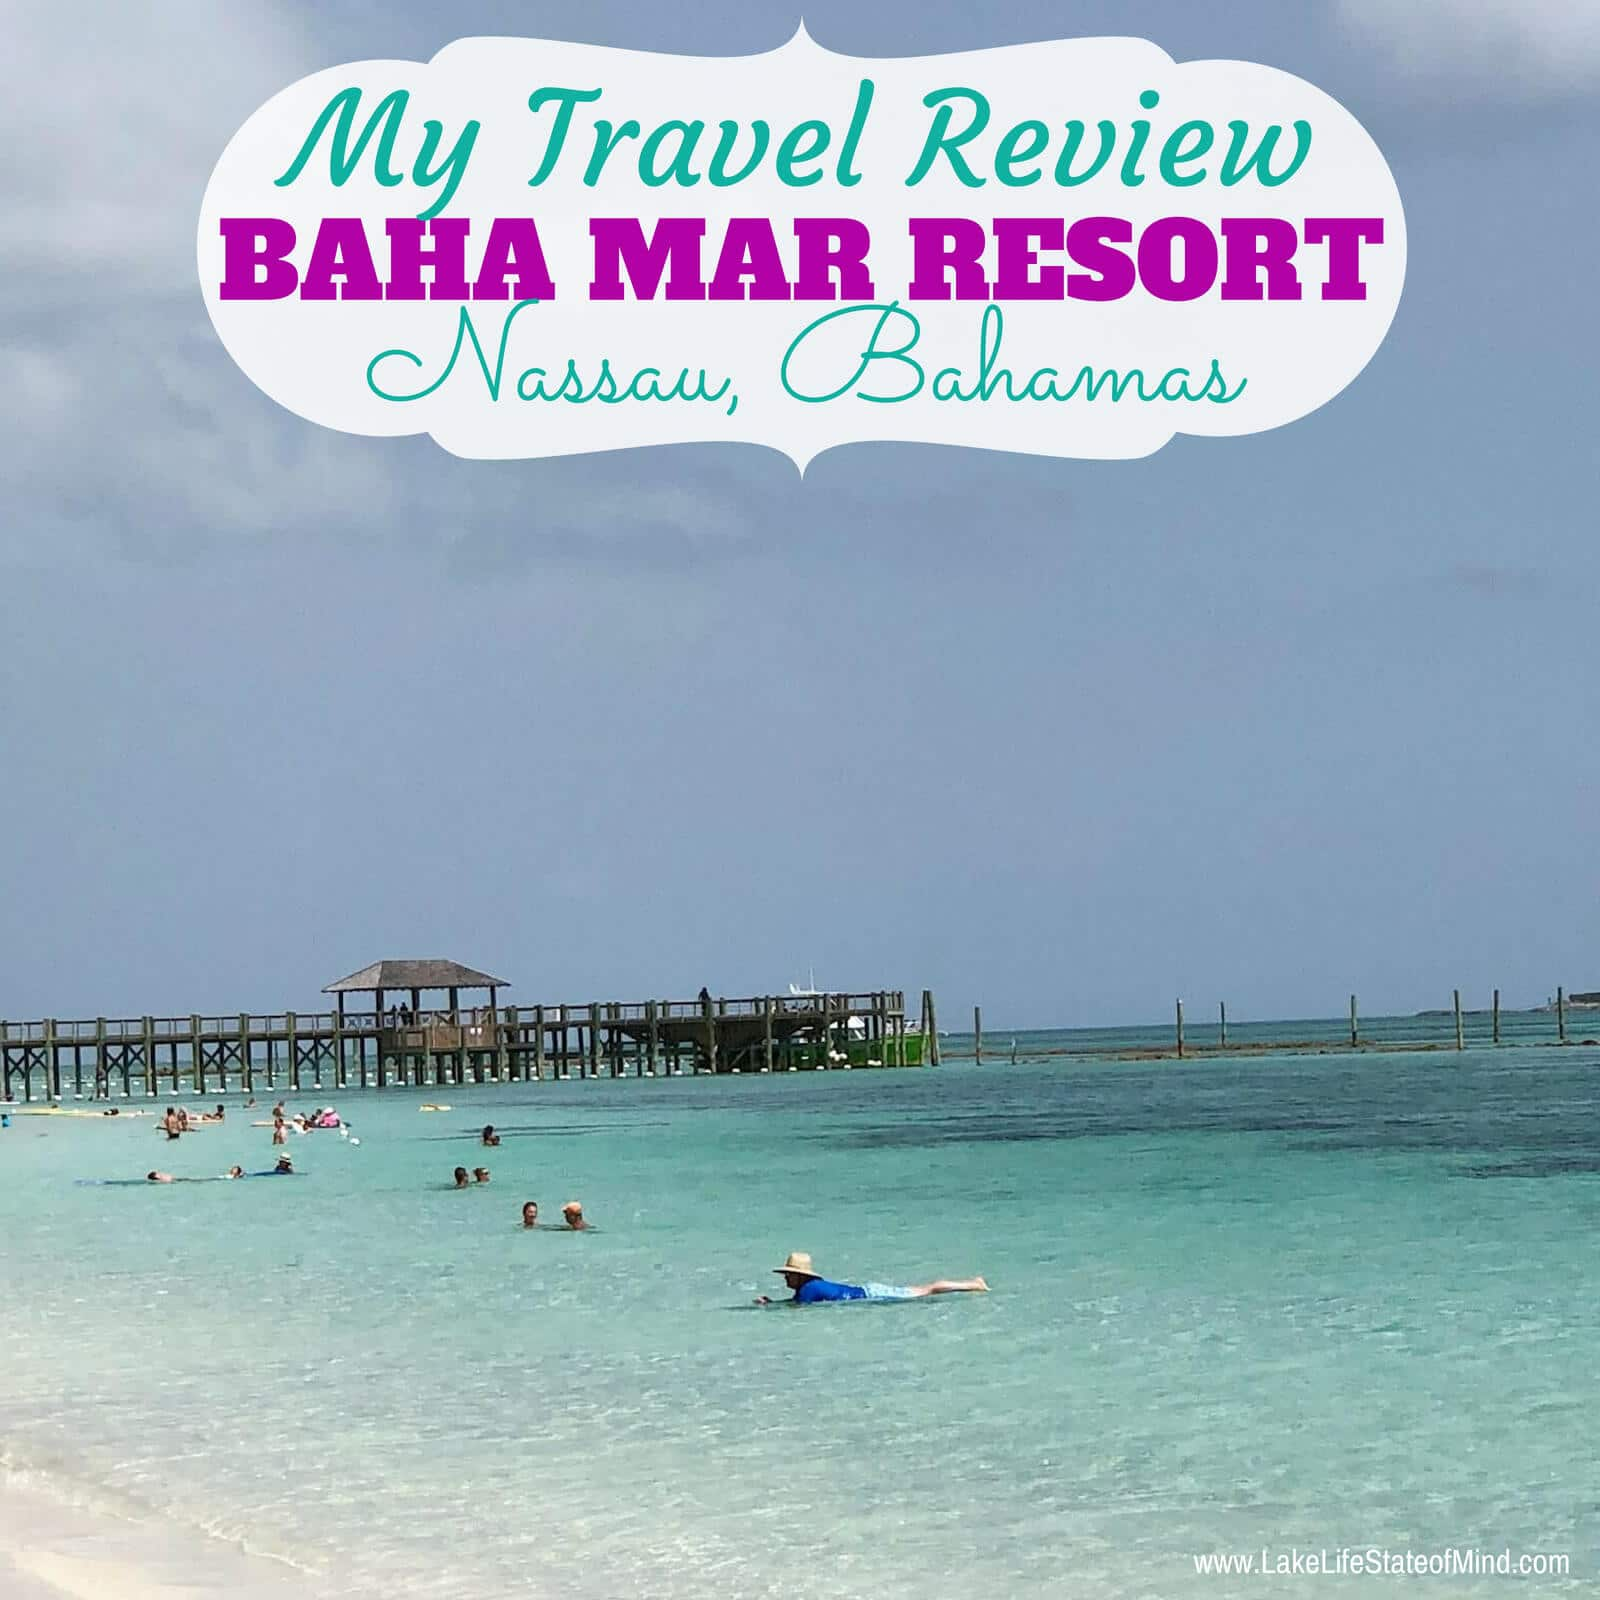 Our stay at the Baha Mar Resort in Nassau, Bahamas